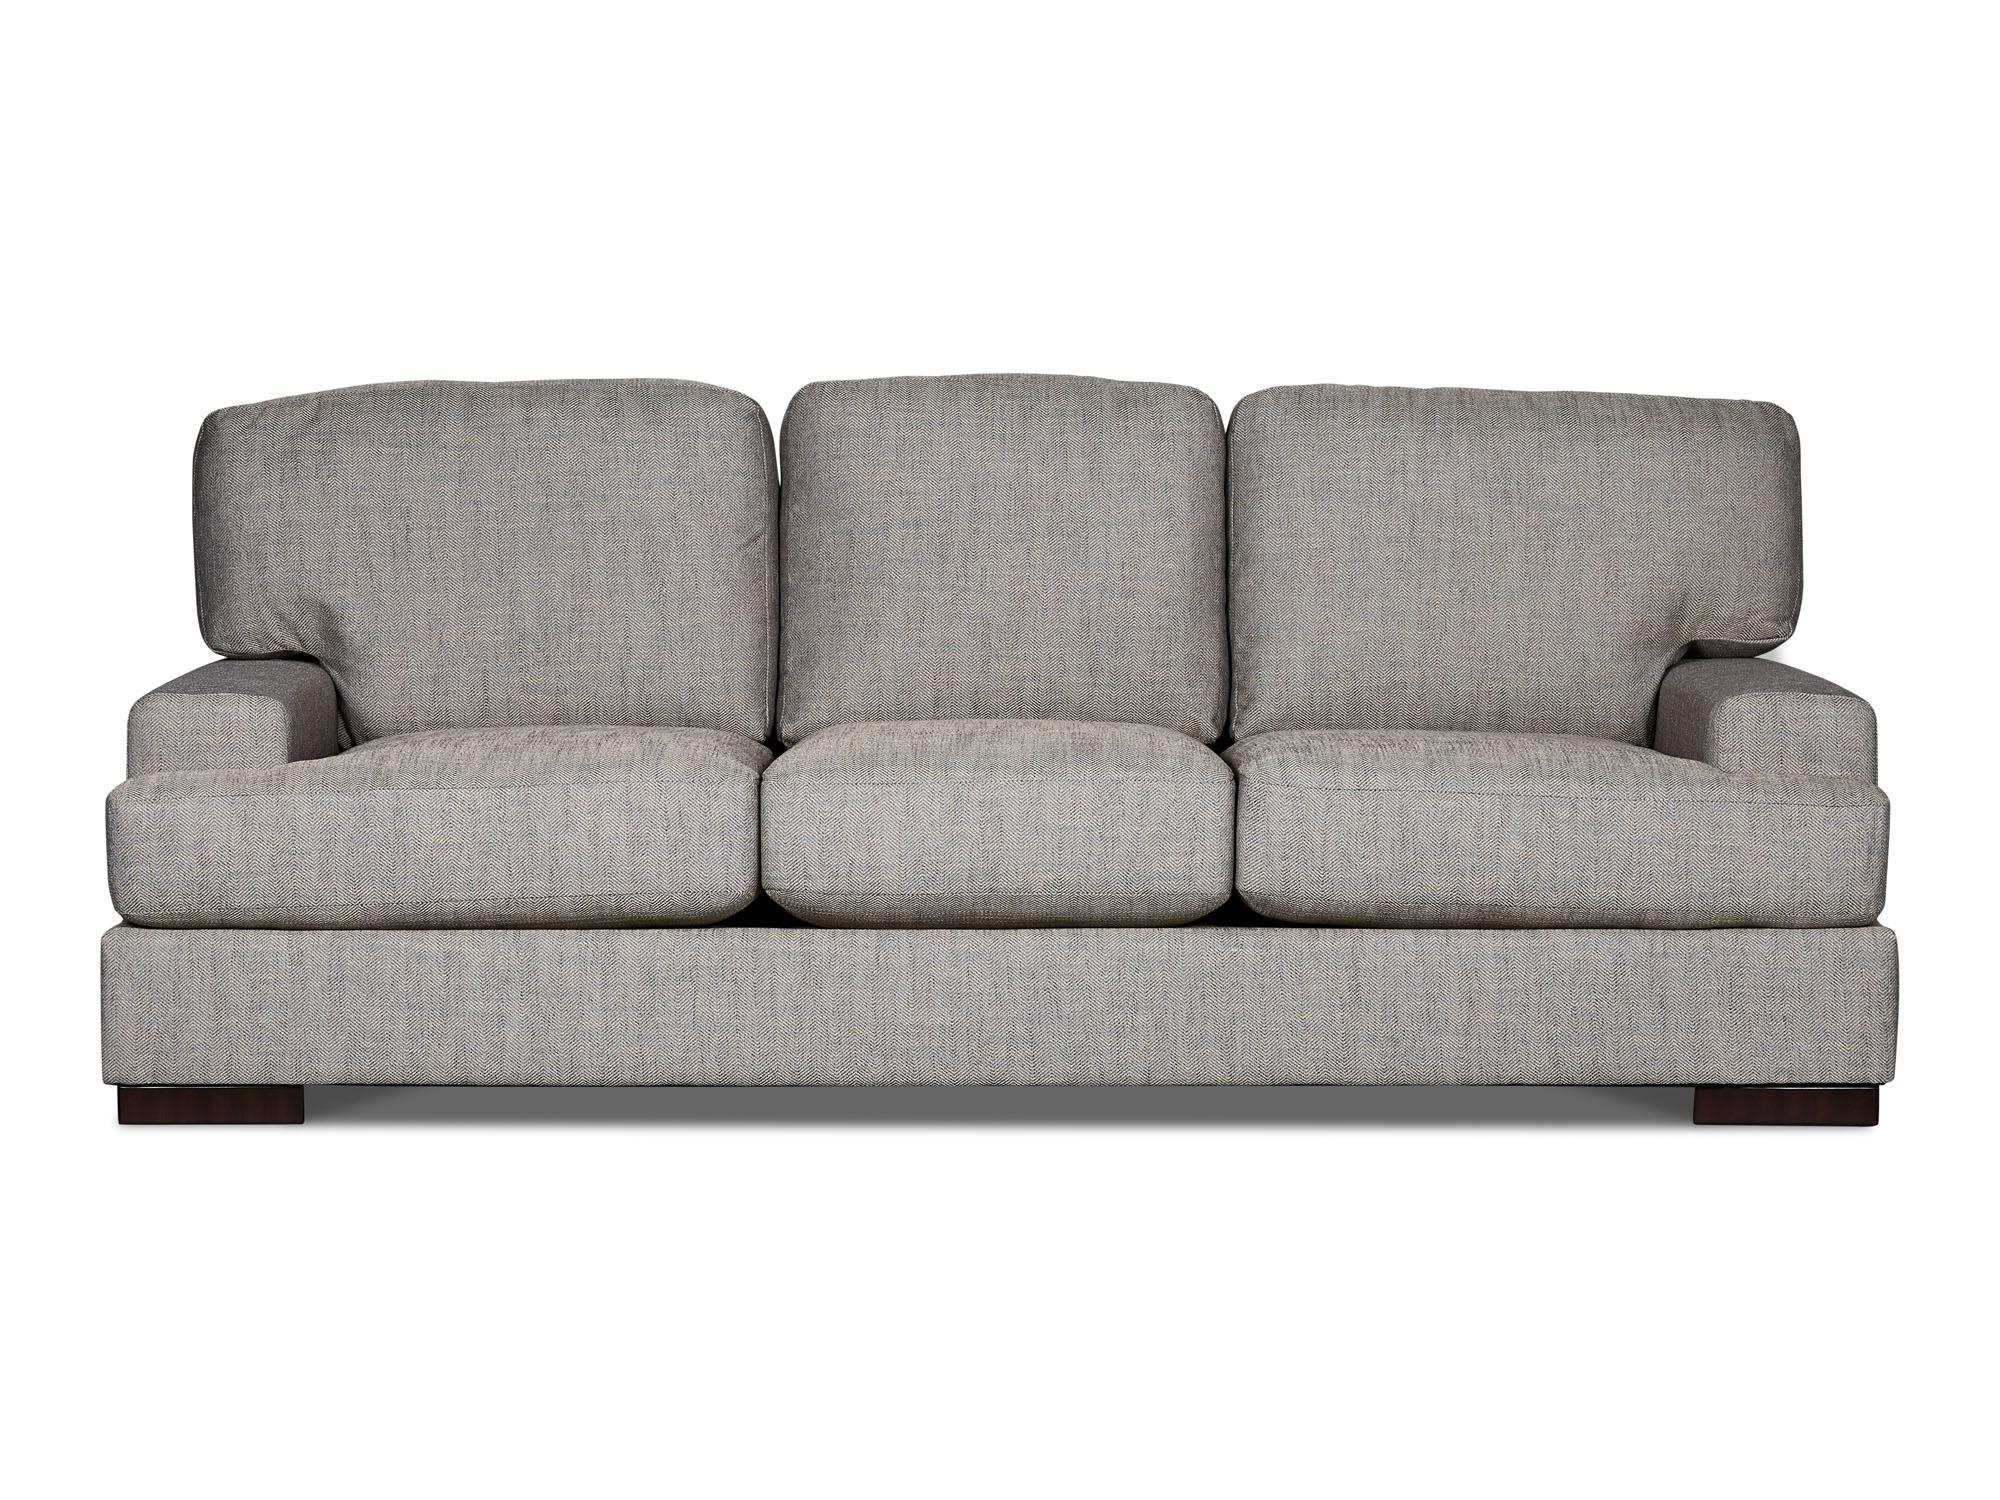 Sofas : Fabulous Single Seater Sofa Designs Single Chair Bed One Regarding Cushion Sofa Beds (View 11 of 23)